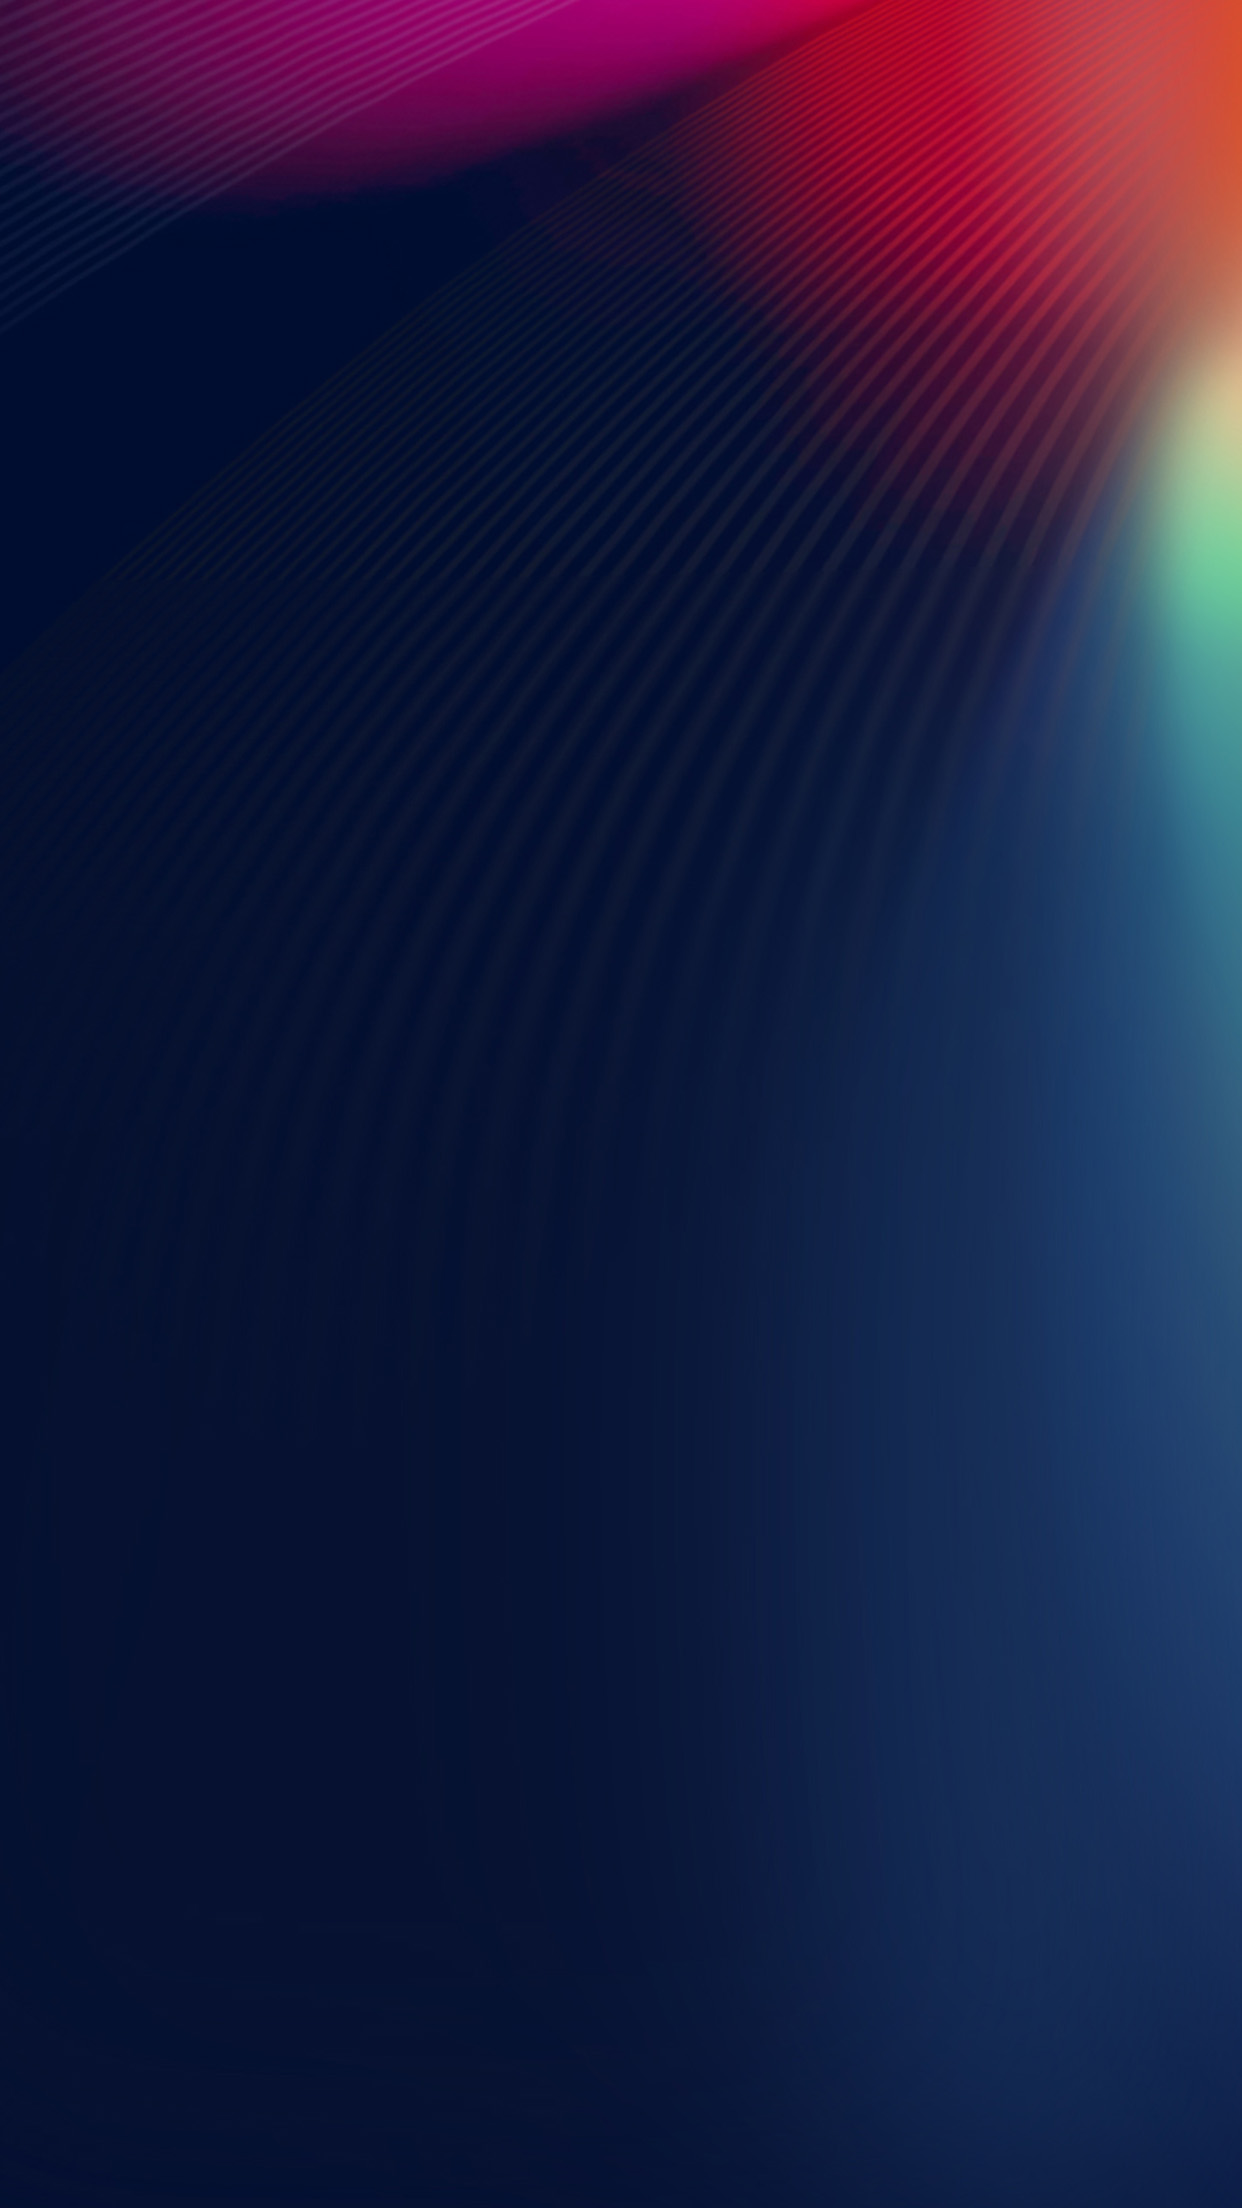 Rainbow Abstract Ligh Blue Pattern Android Wallpaper - Iphone Abstract Dark Rainbow - HD Wallpaper